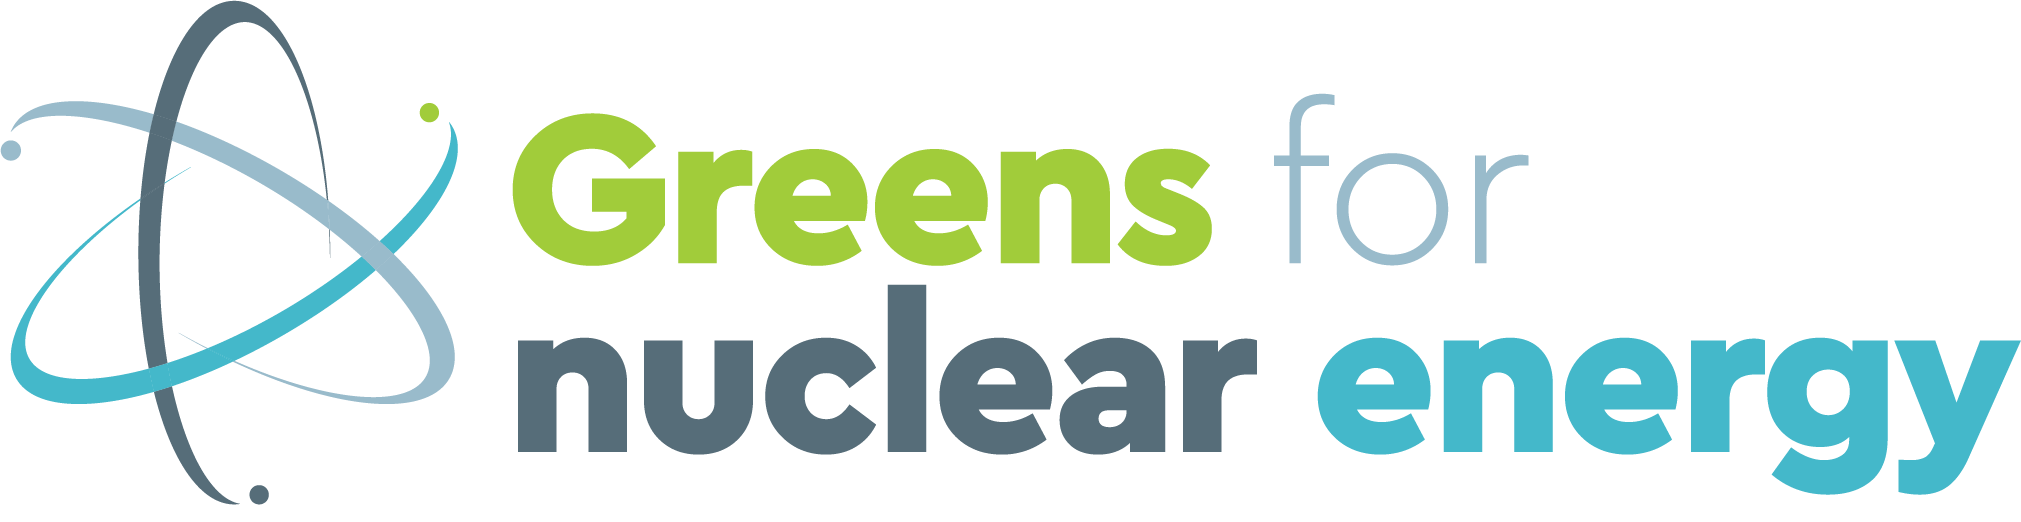 Greens for nuclear energy